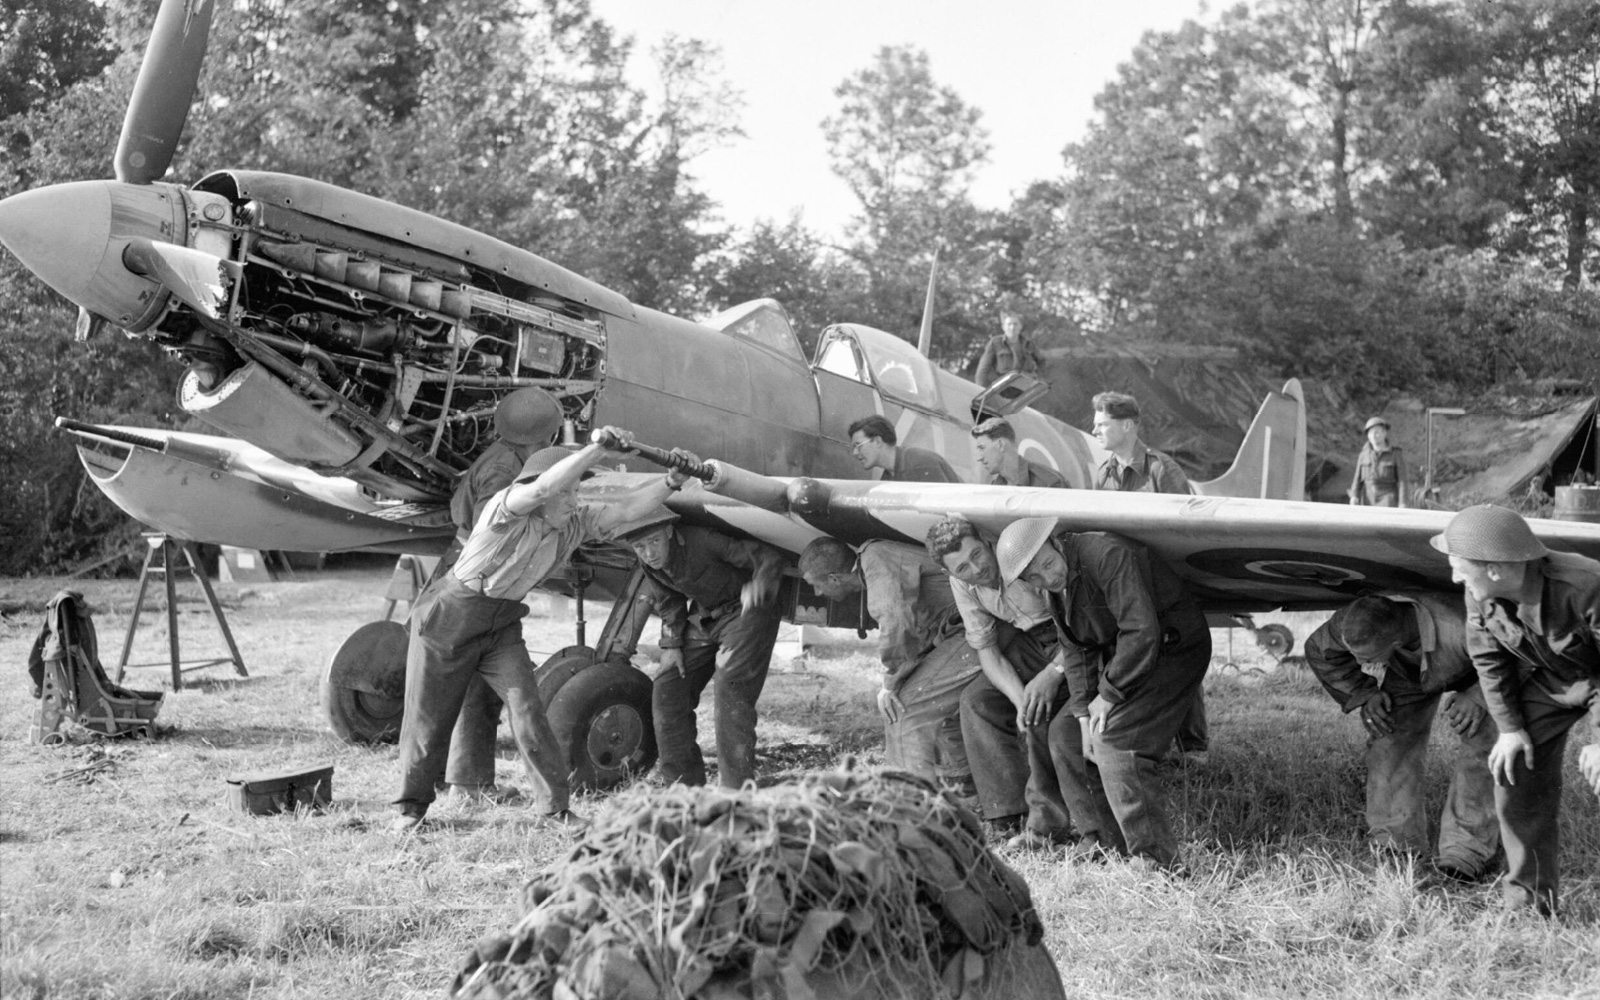 Men of an RAF Repair and Salvage Unit working on a damaged Supermarine Spitfire Mk IX of No 403 Squadron, Royal Canadian Air Force, at a forward airstrip in Normandy, 19 June 1944